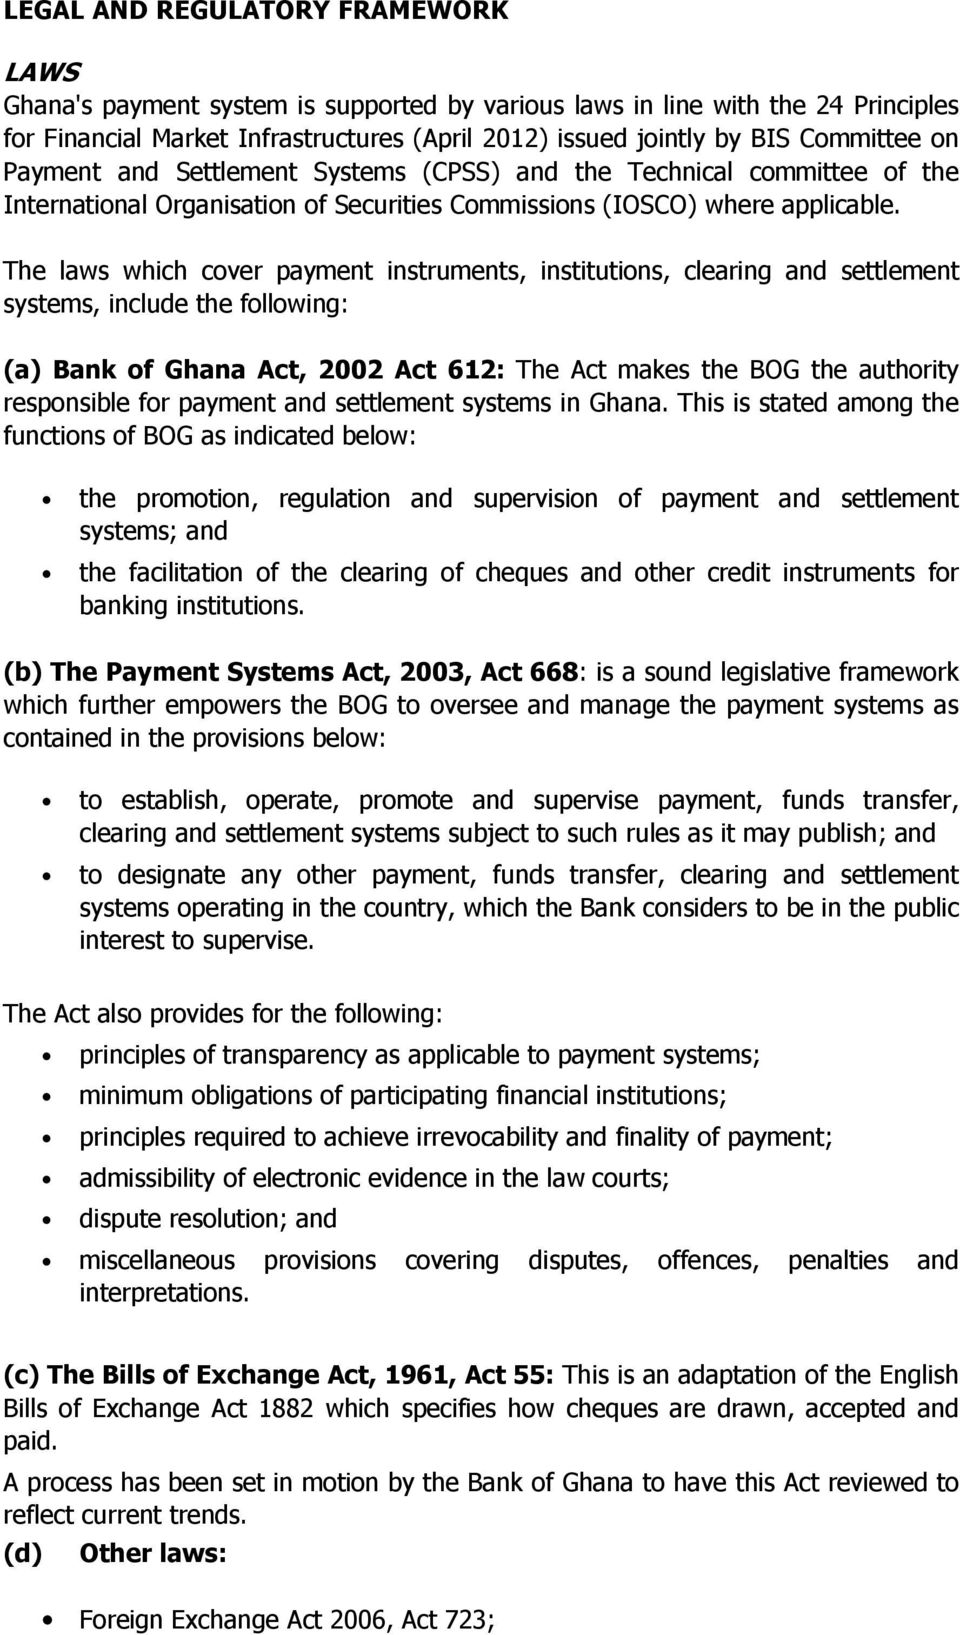 The laws which cover payment instruments, institutions, clearing and settlement systems, include the following: (a) Bank of Ghana Act, 2002 Act 612: The Act makes the BOG the authority responsible